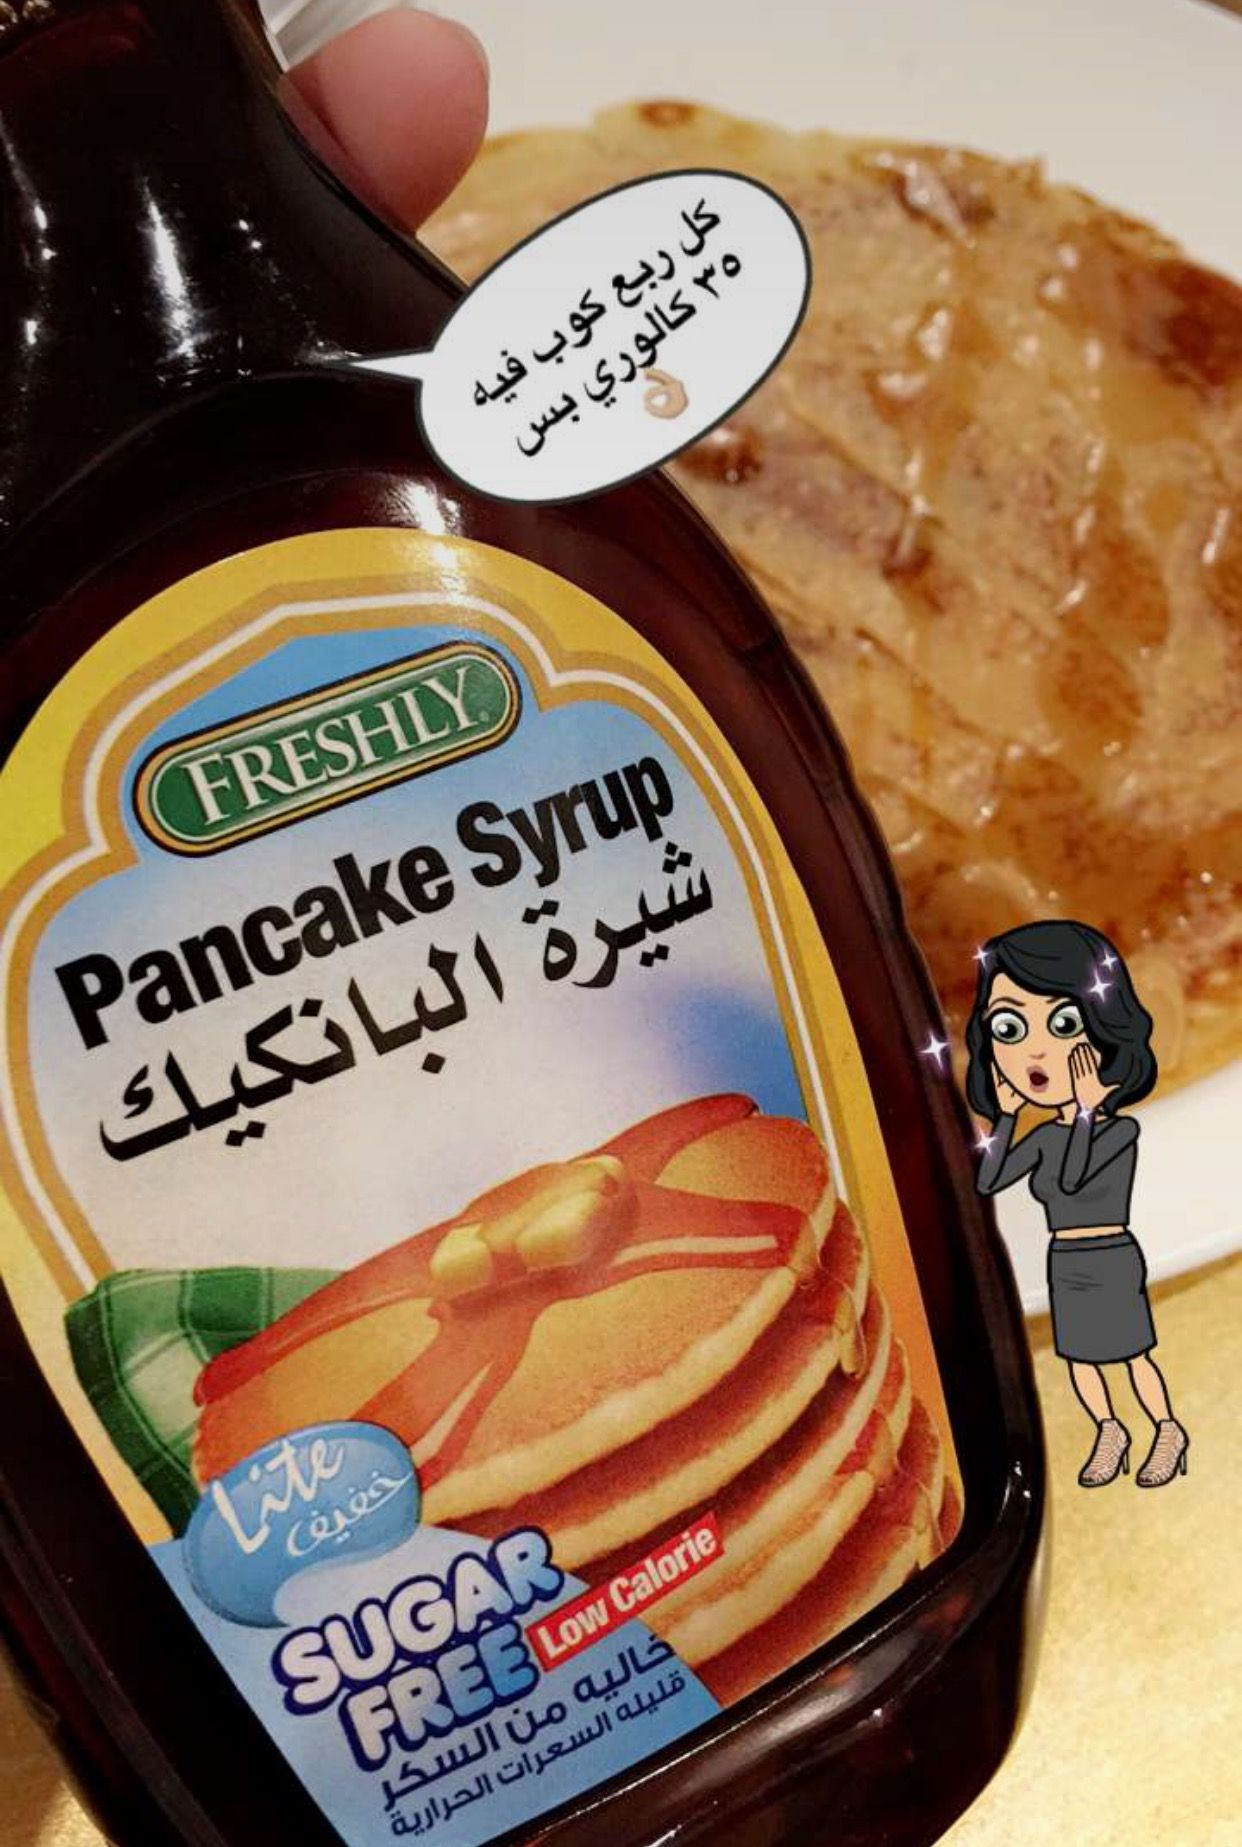 شيرة البان كيك Ben And Jerrys Ice Cream Pancake Syrup Calorie